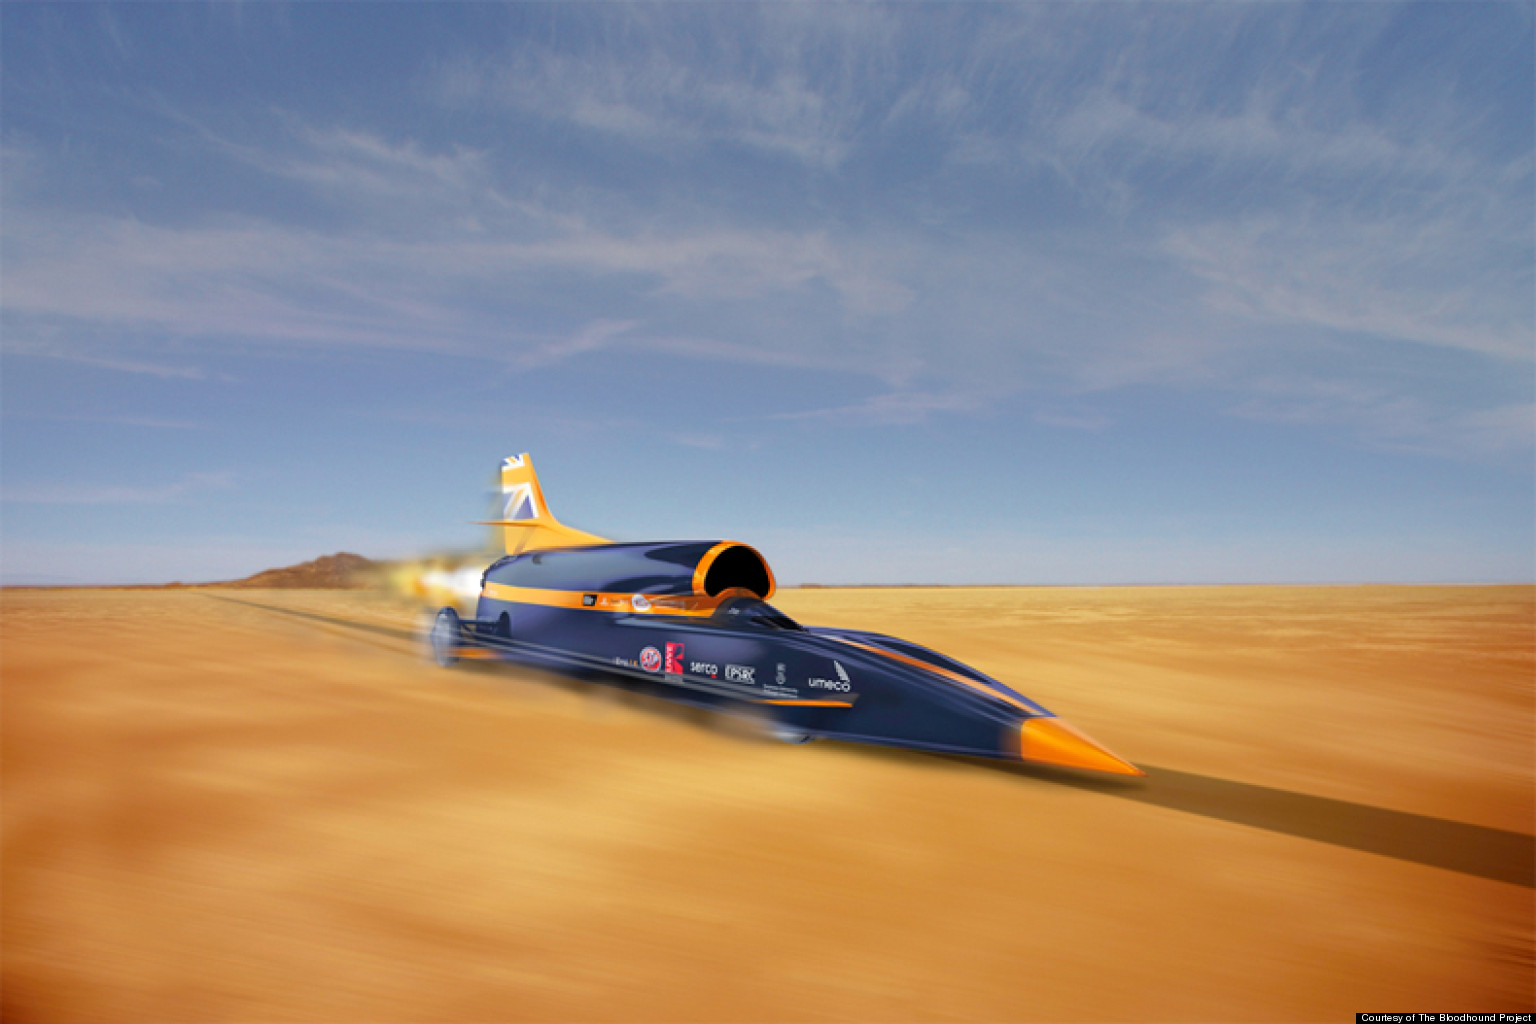 bloodhound project land speed record competitors vie for fastest car huffpost. Black Bedroom Furniture Sets. Home Design Ideas